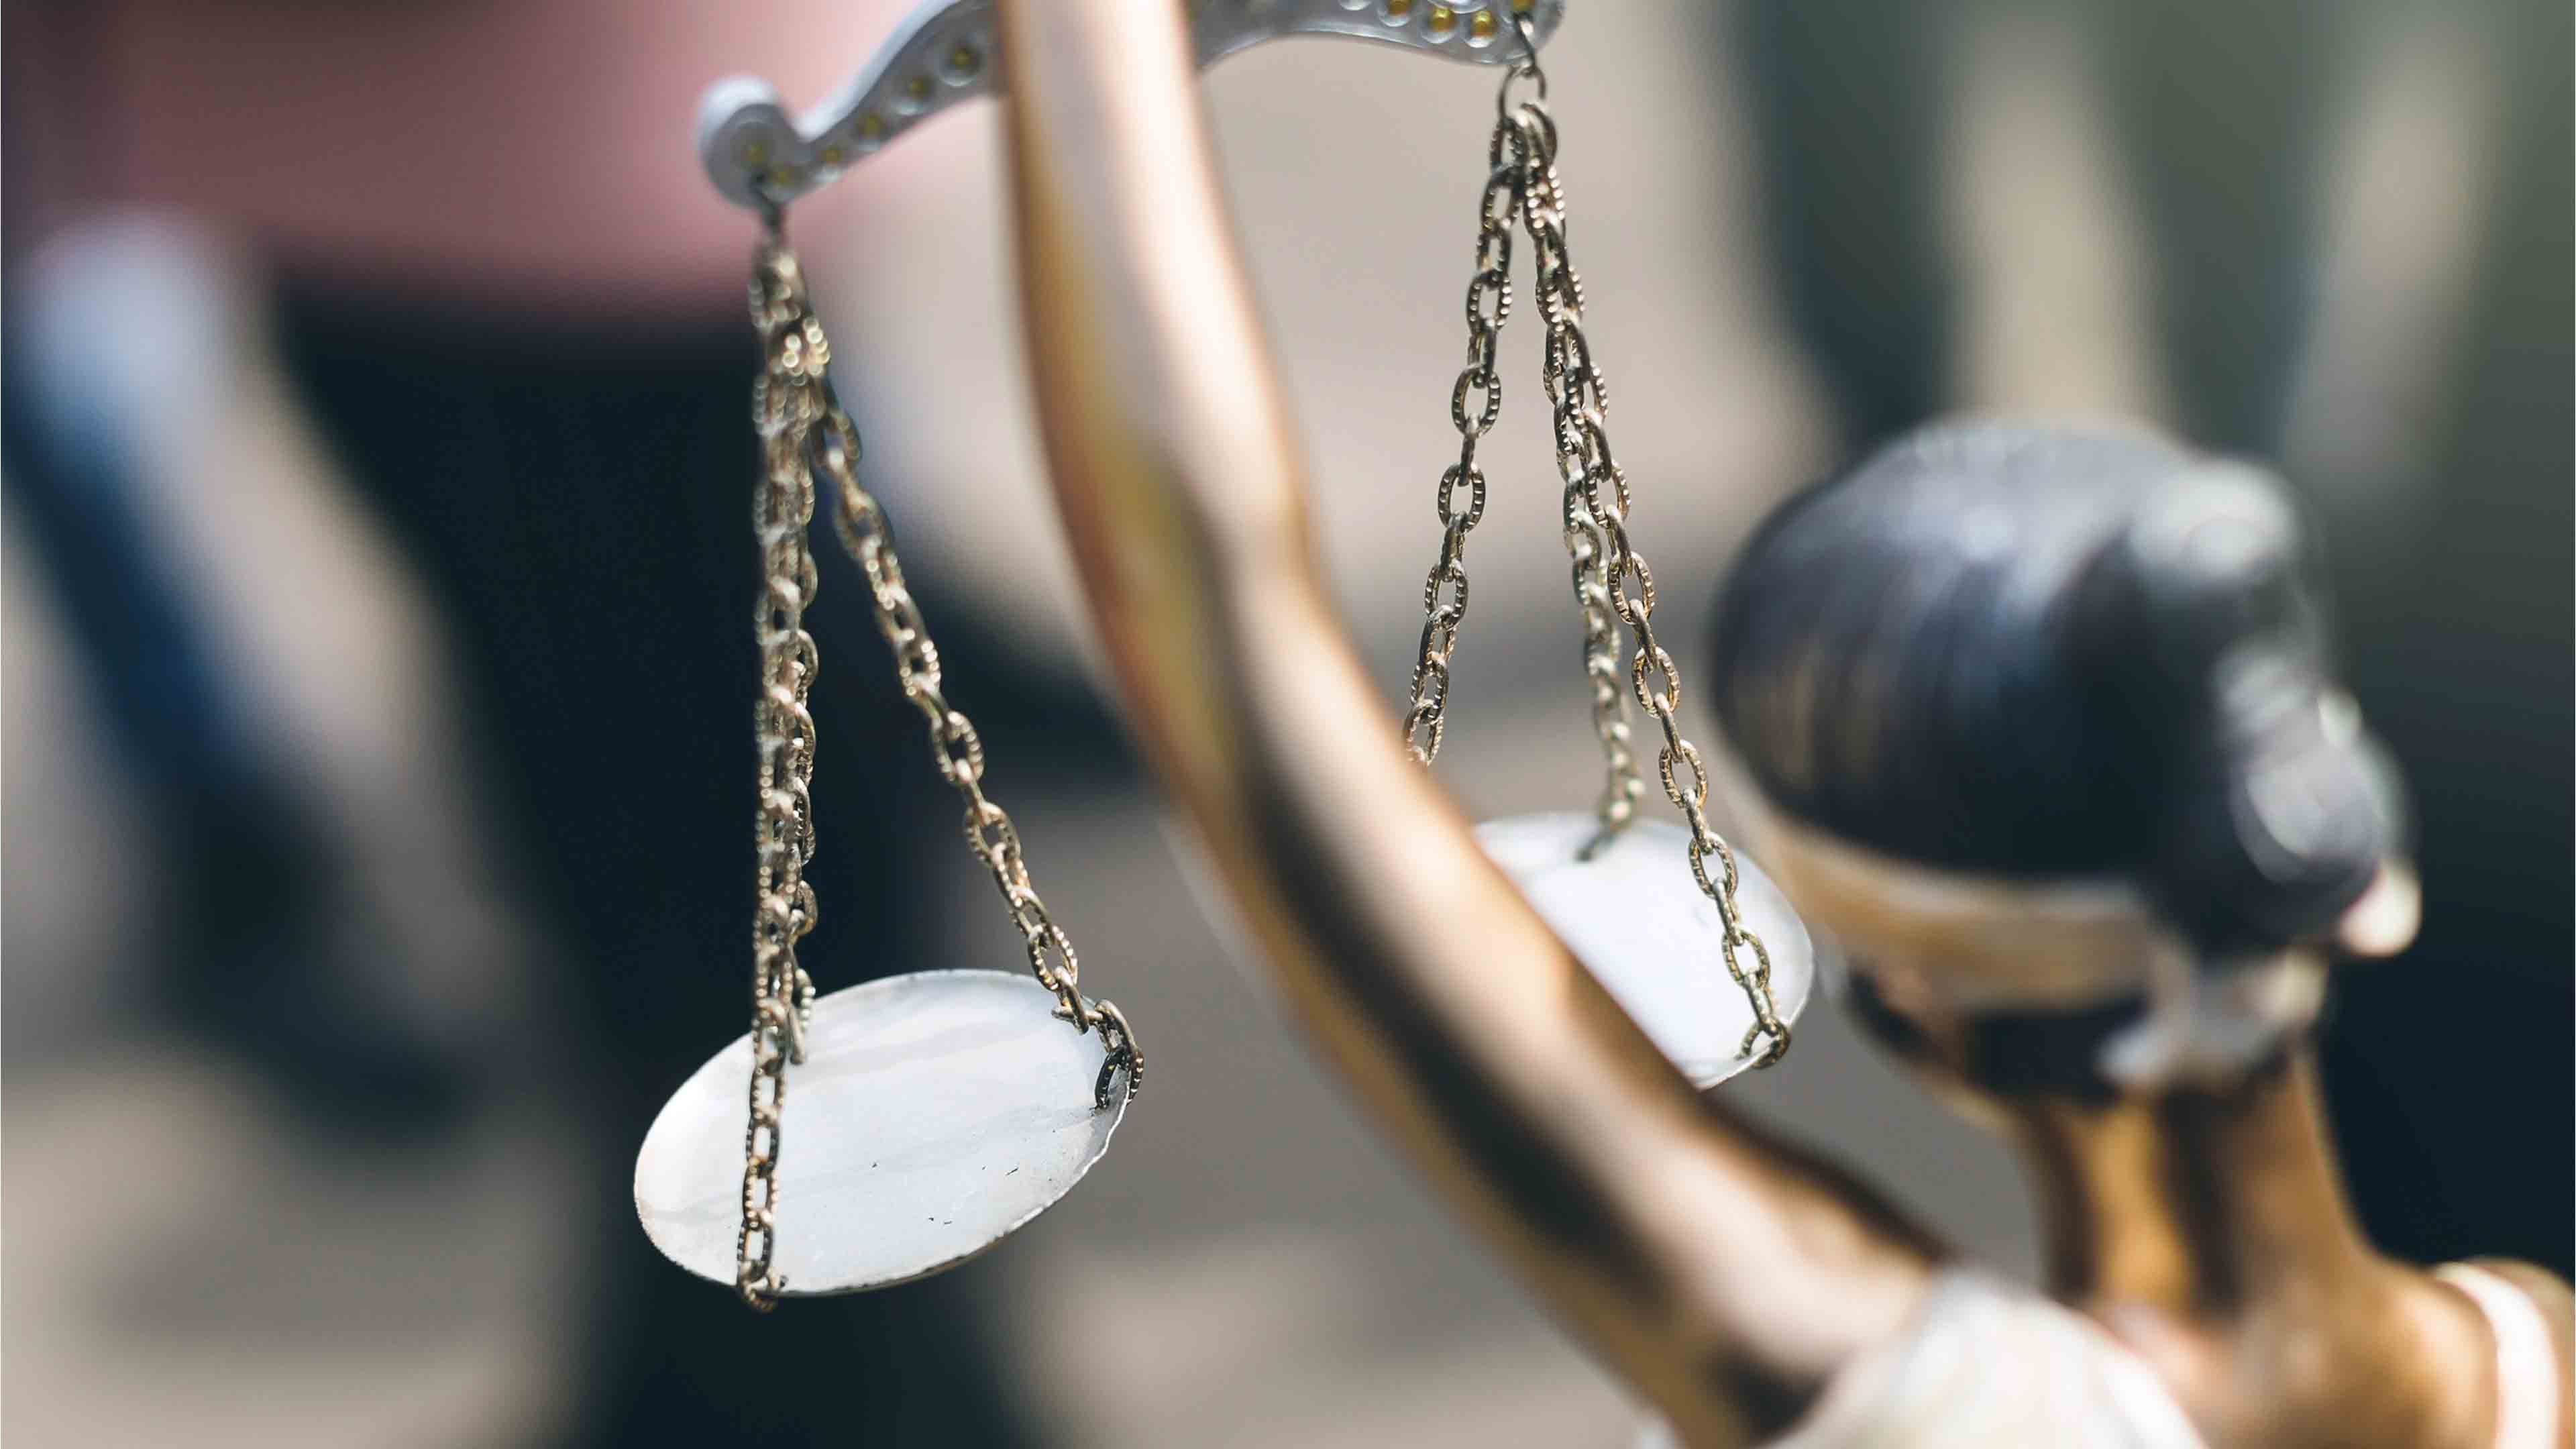 Mesothelioma Lawsuits What To Expect How We Can Help